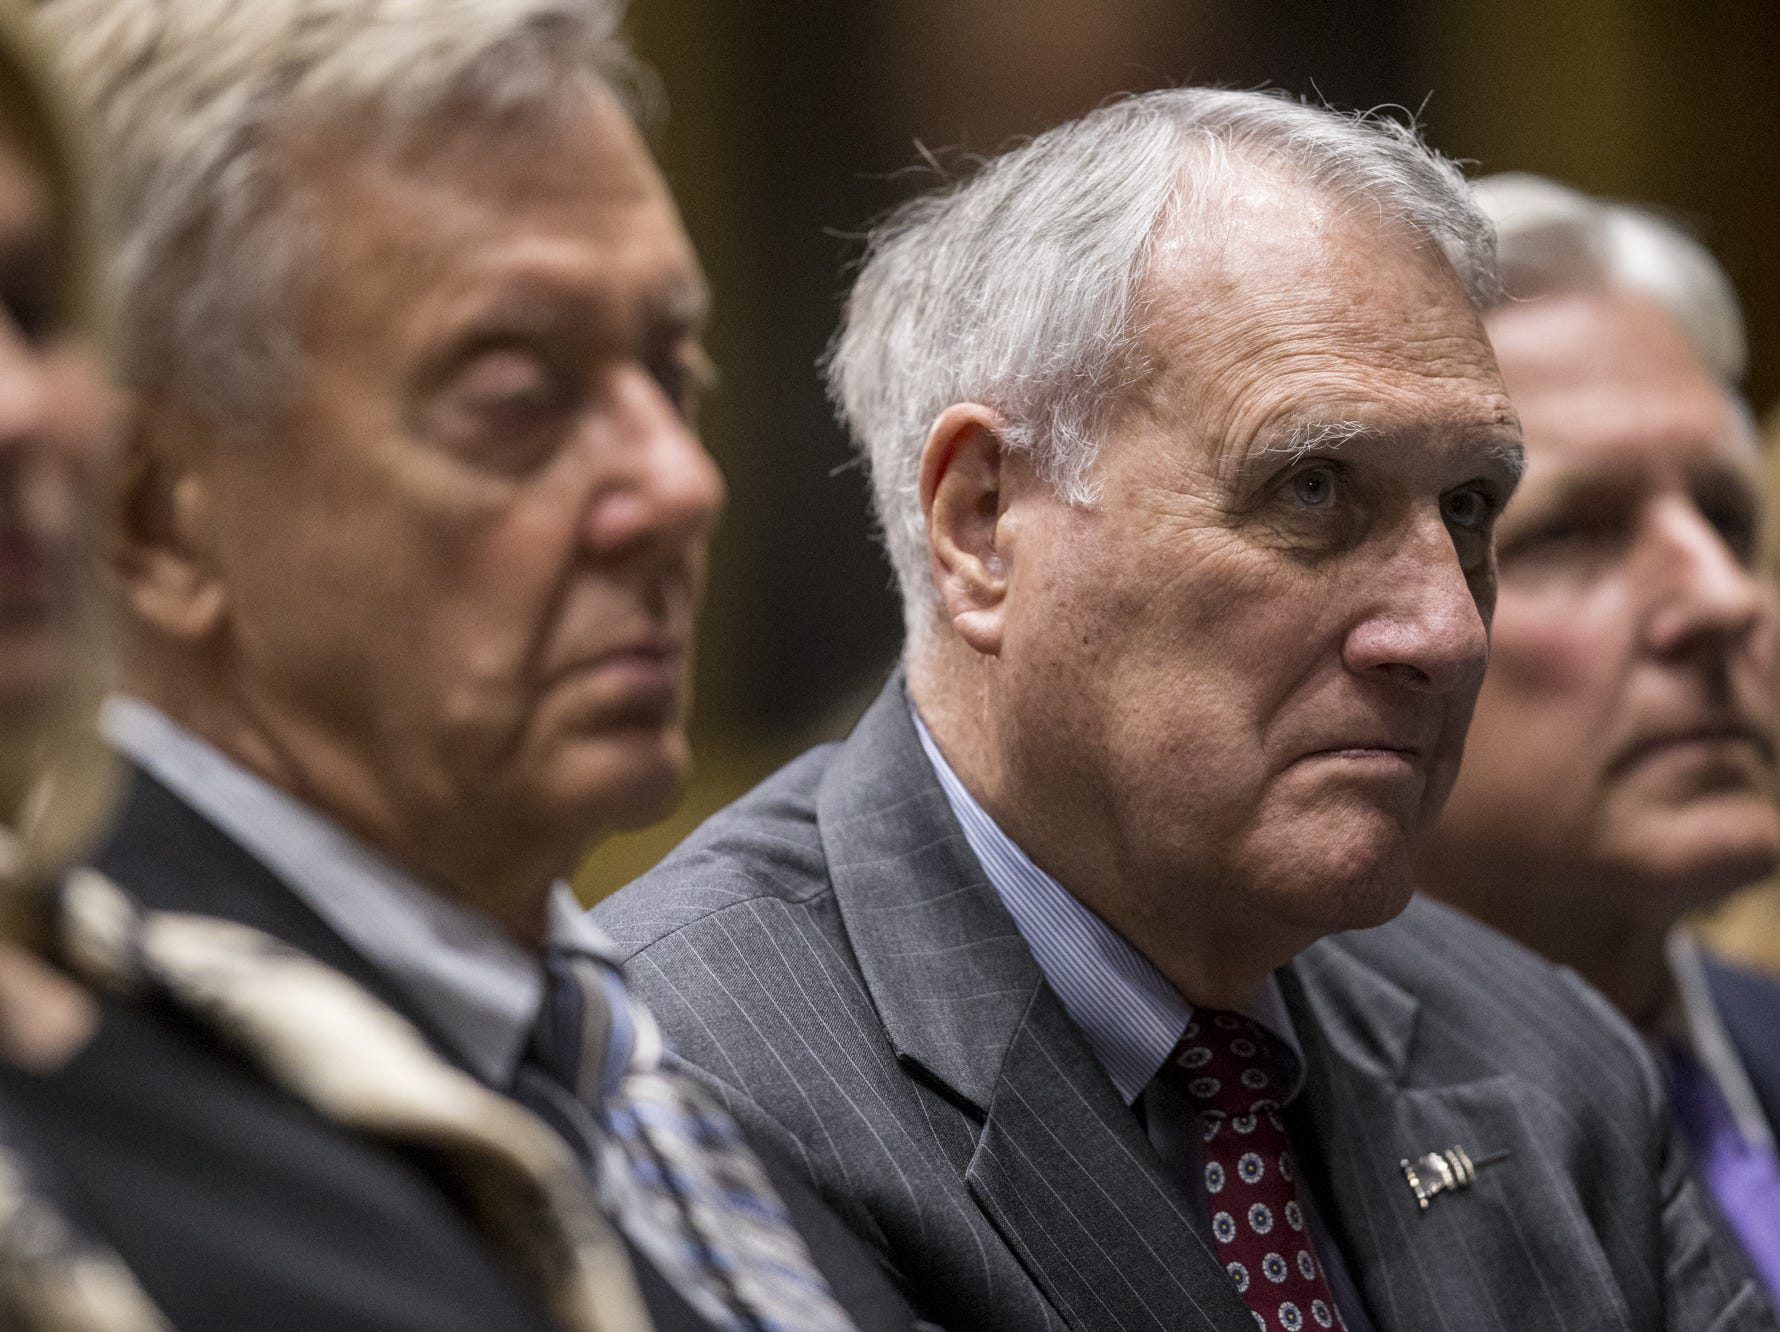 Former Arizona Senator Jon Kyl listens to Gov. Doug Ducey's State of the State address on Jan. 14, 2019, at the Arizona House of Representatives Chambers in Phoenix.